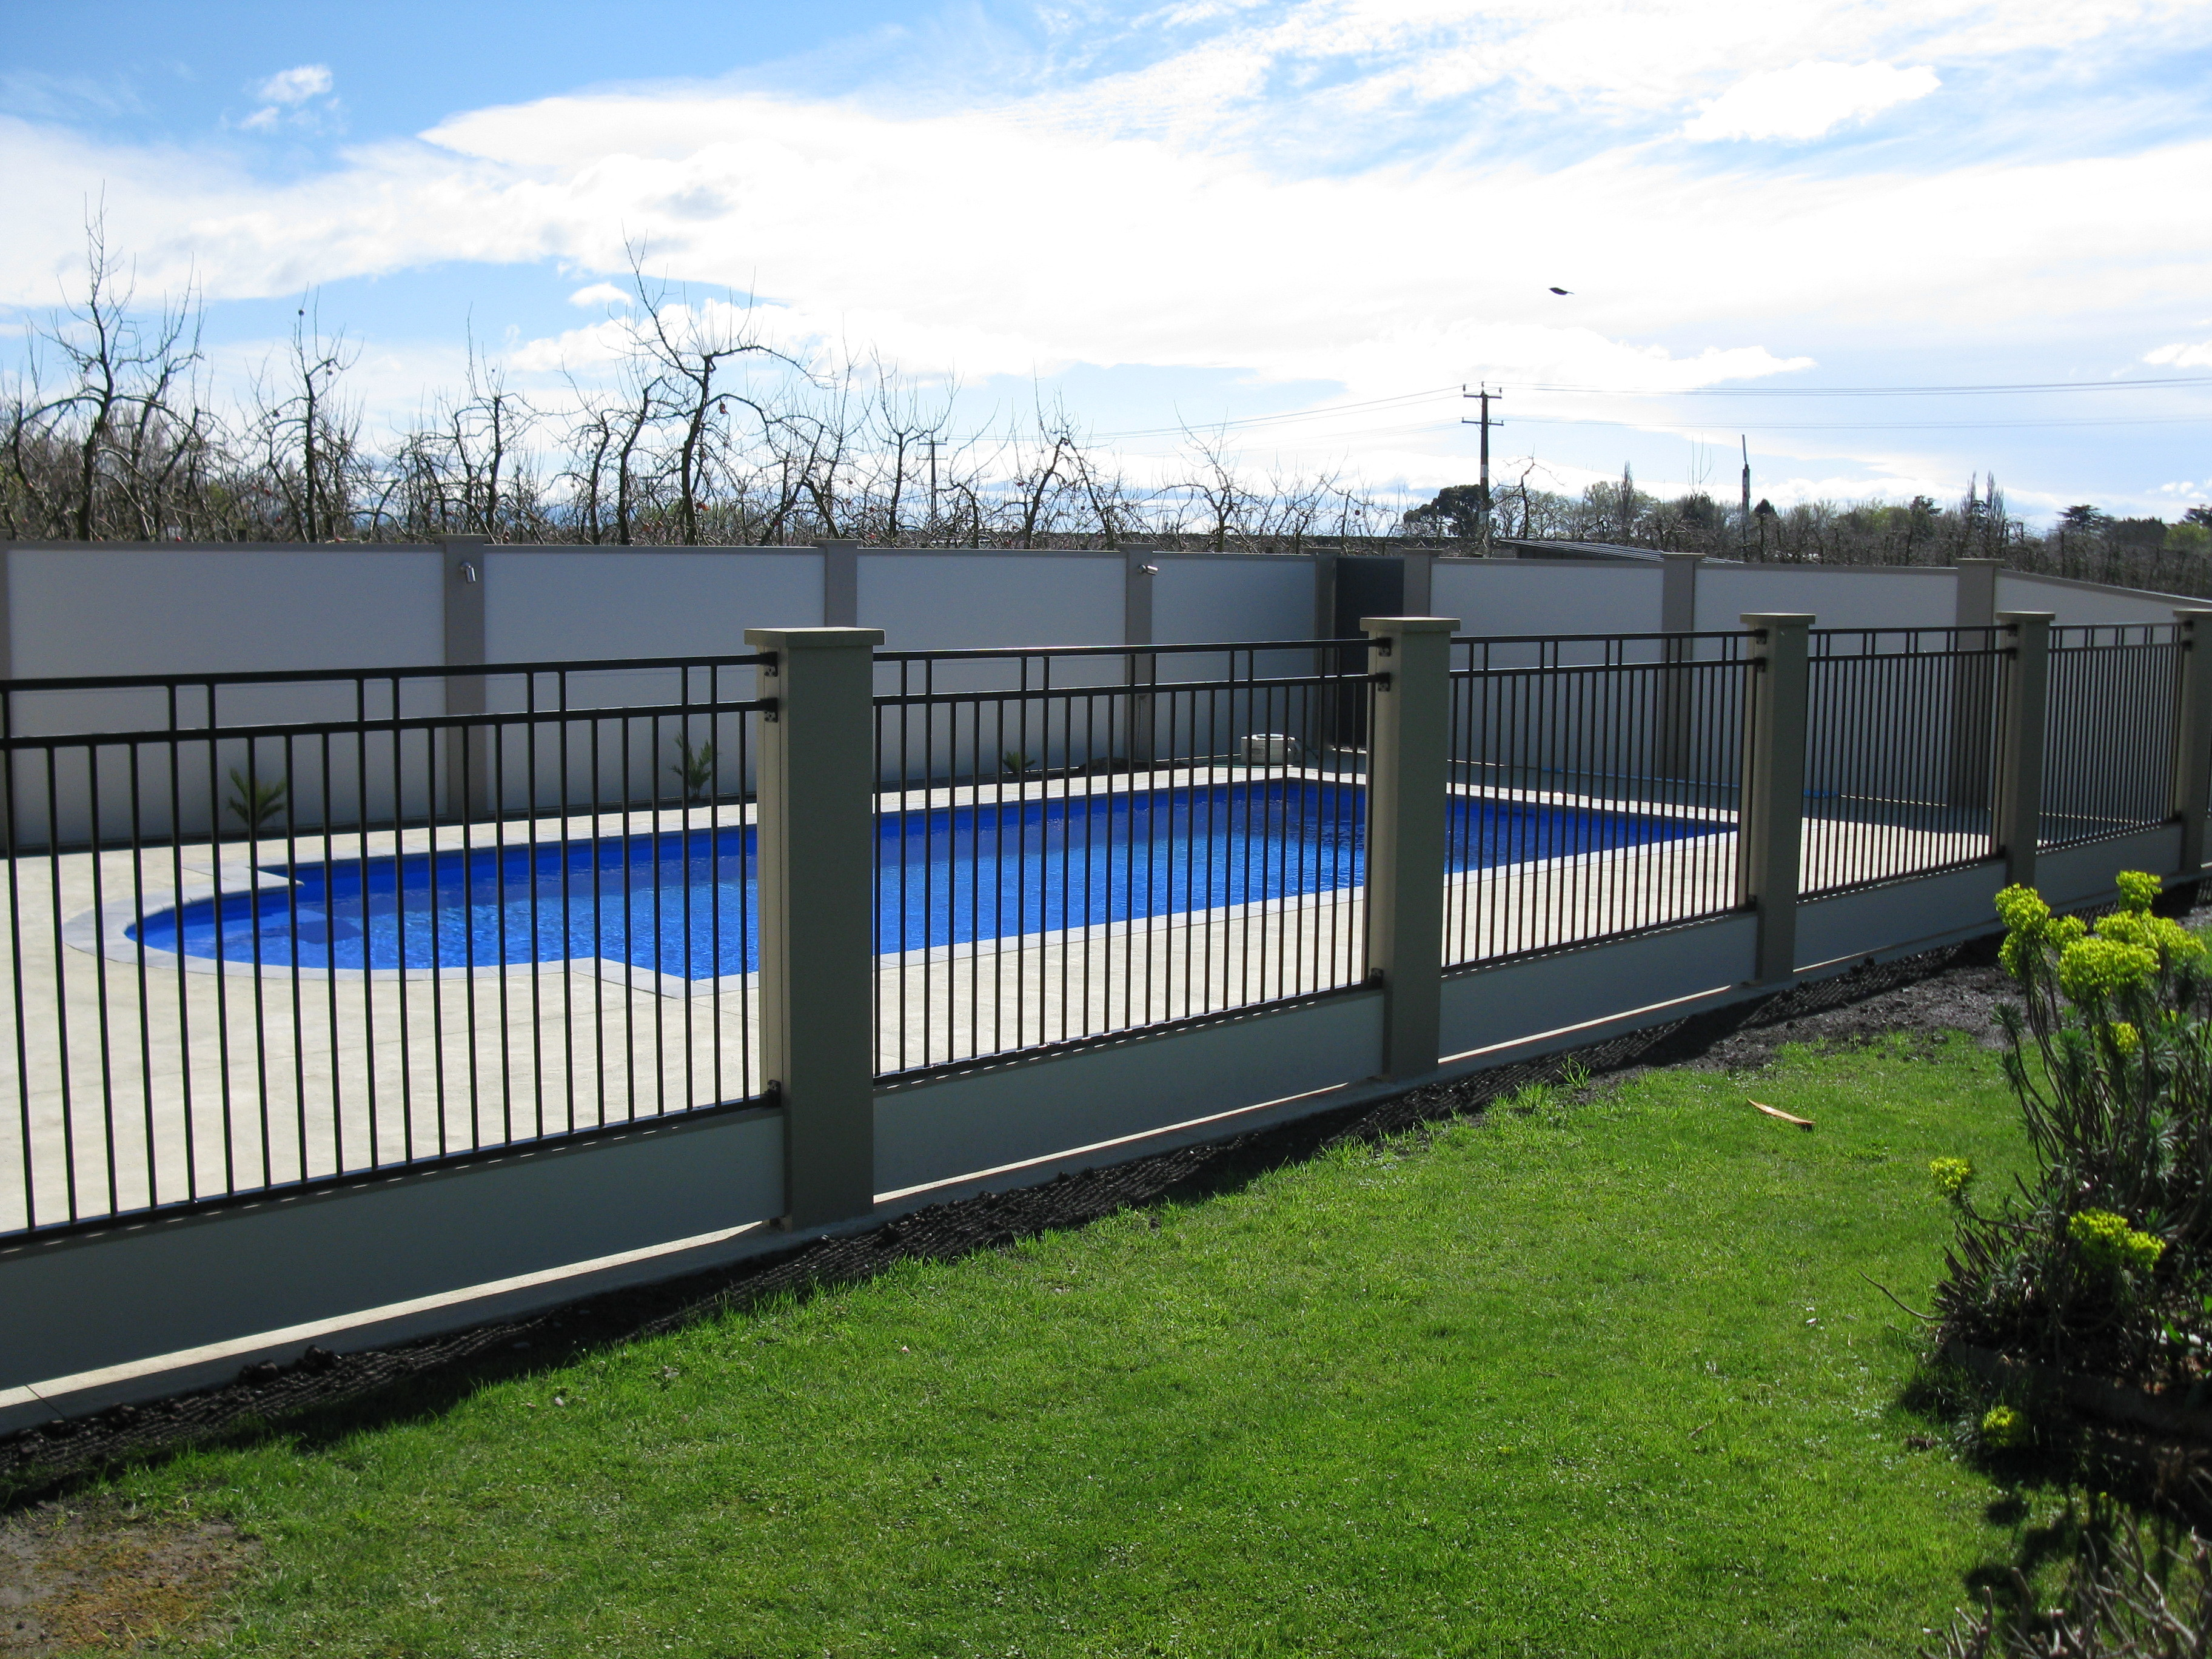 Modular Urban fence panels with concrete filled columns for pool enclosure